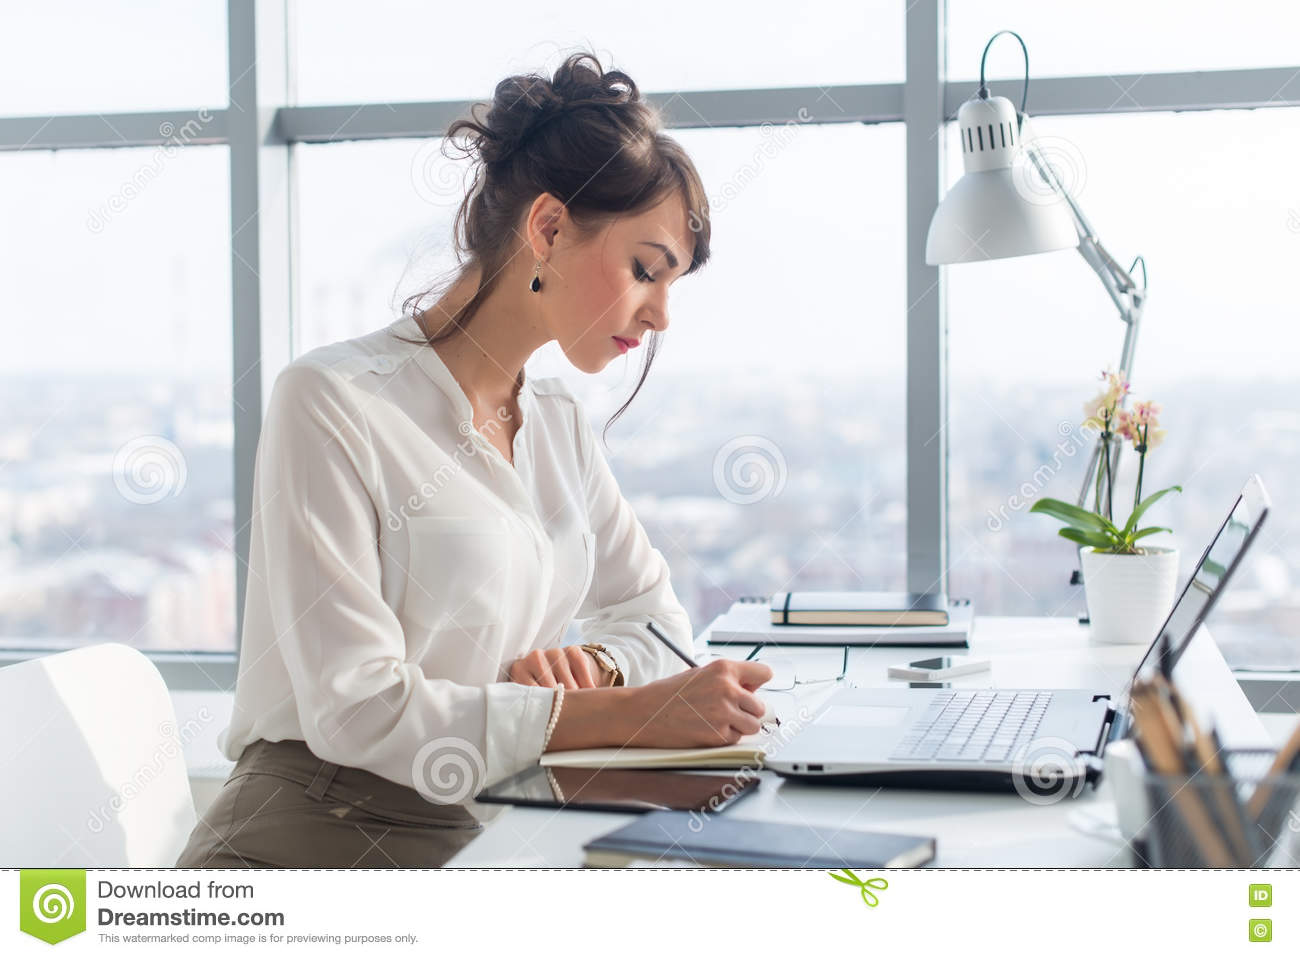 Young woman working as an office manager, planning work tasks, writing down her schedule to planner at the workplace.